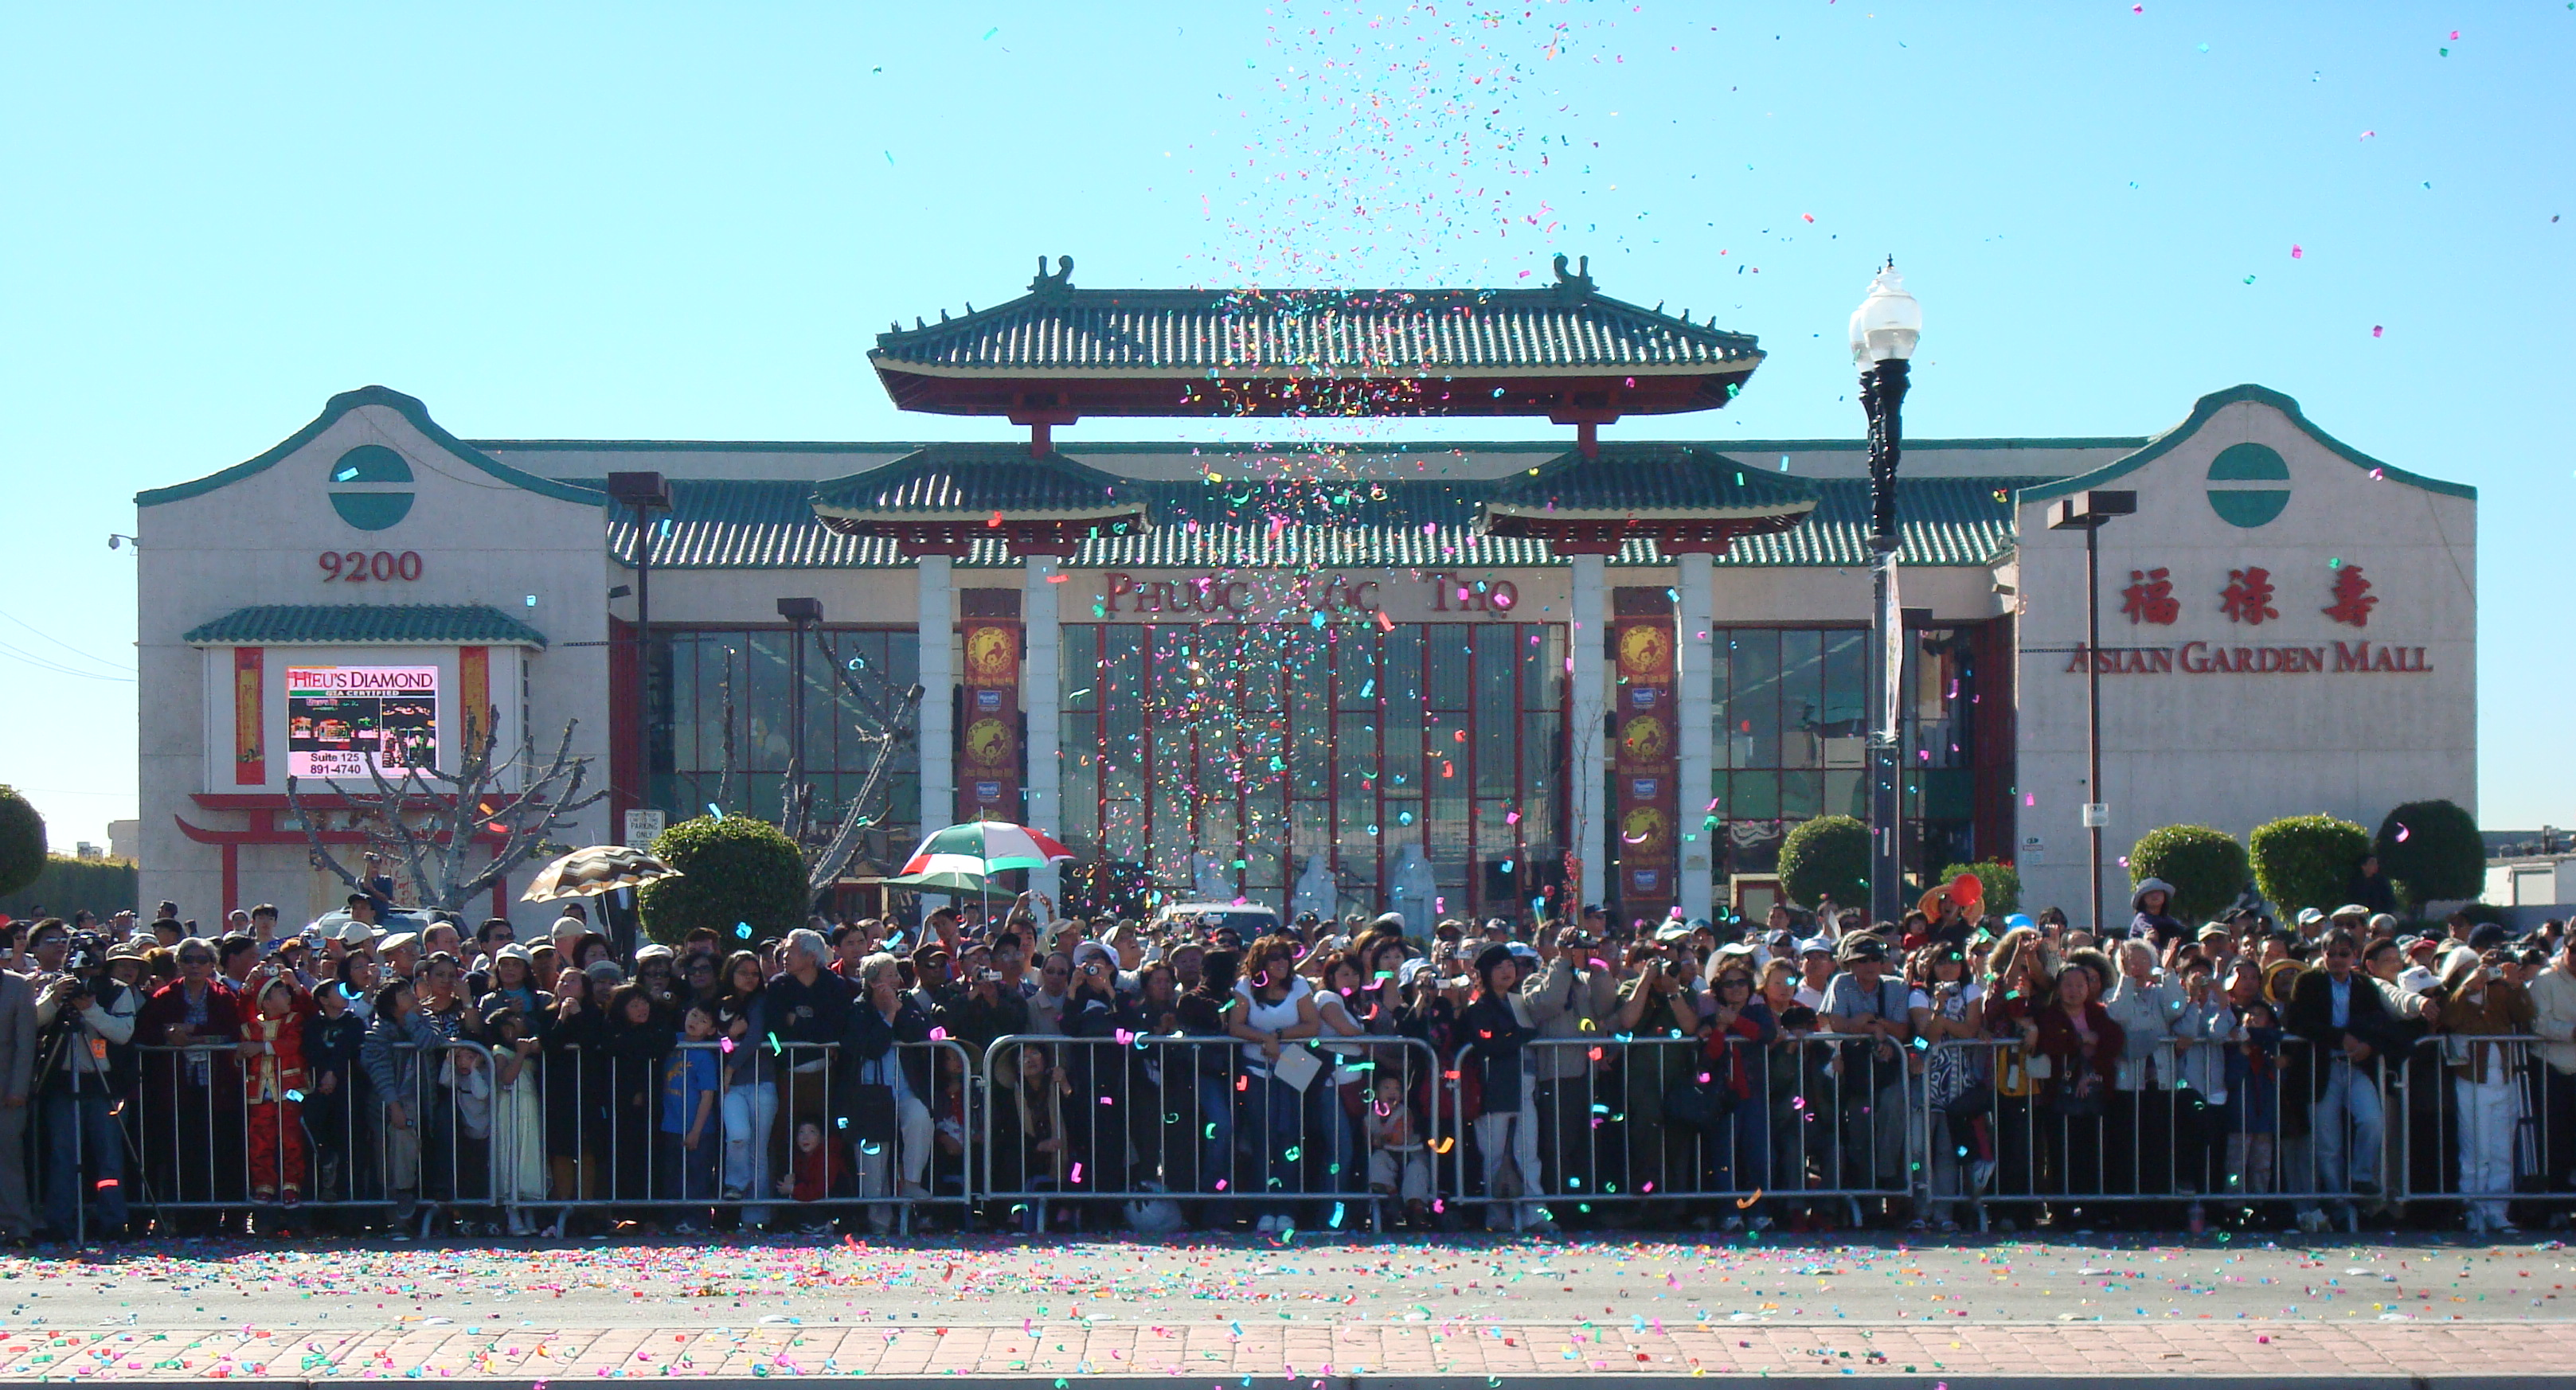 2008 Tết celebration in front of Phước Lộc Thọ from Wikimedia (https://commons.wikimedia.org/wiki/File:Phuoc_Loc_Tho_Tet_2008.jpg).